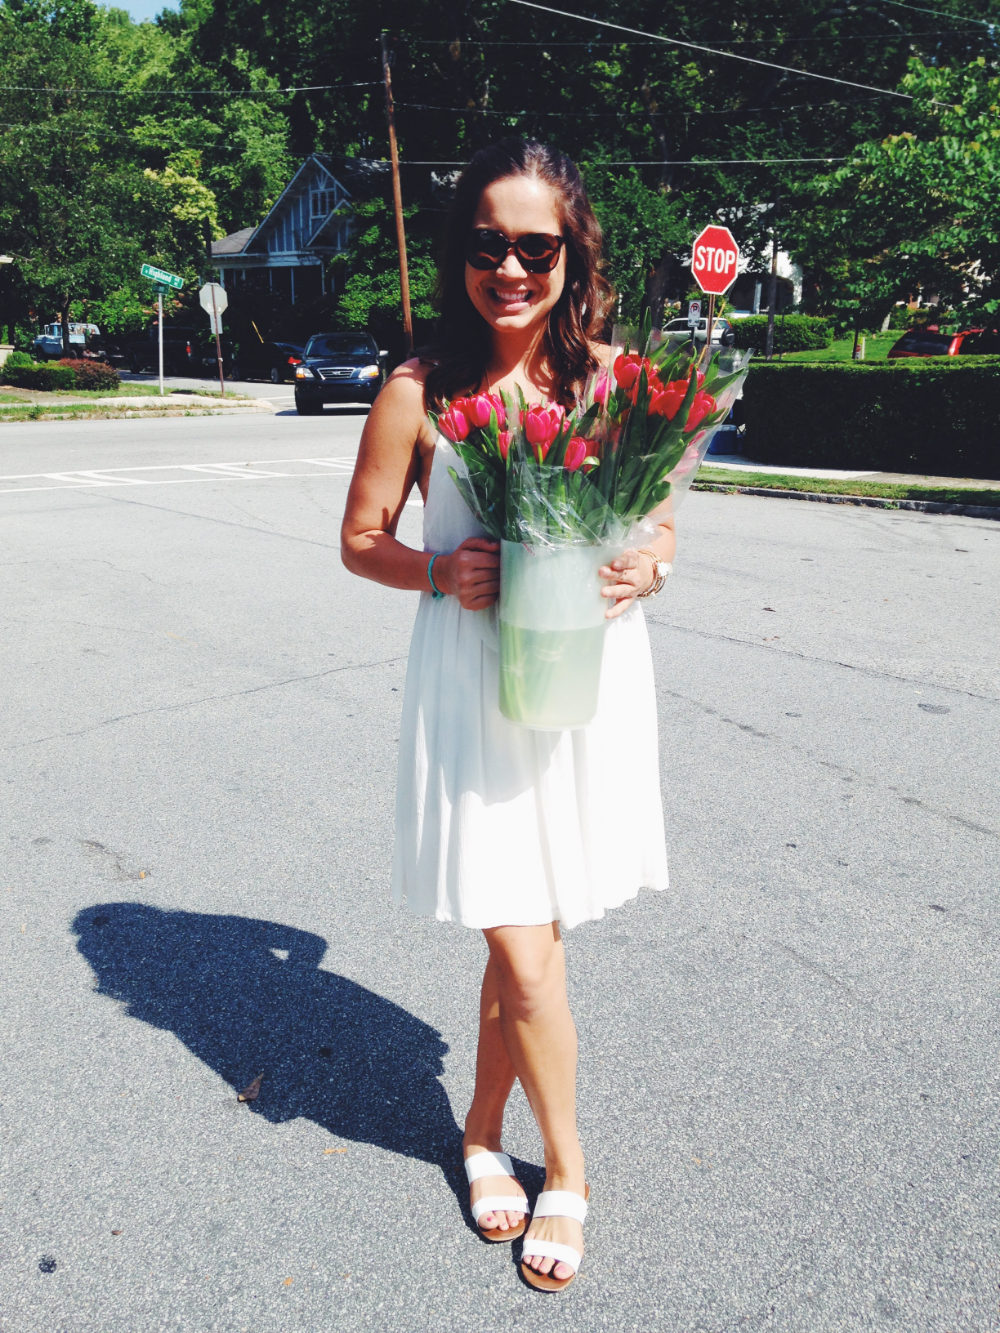 {You can never go wrong with flowers}